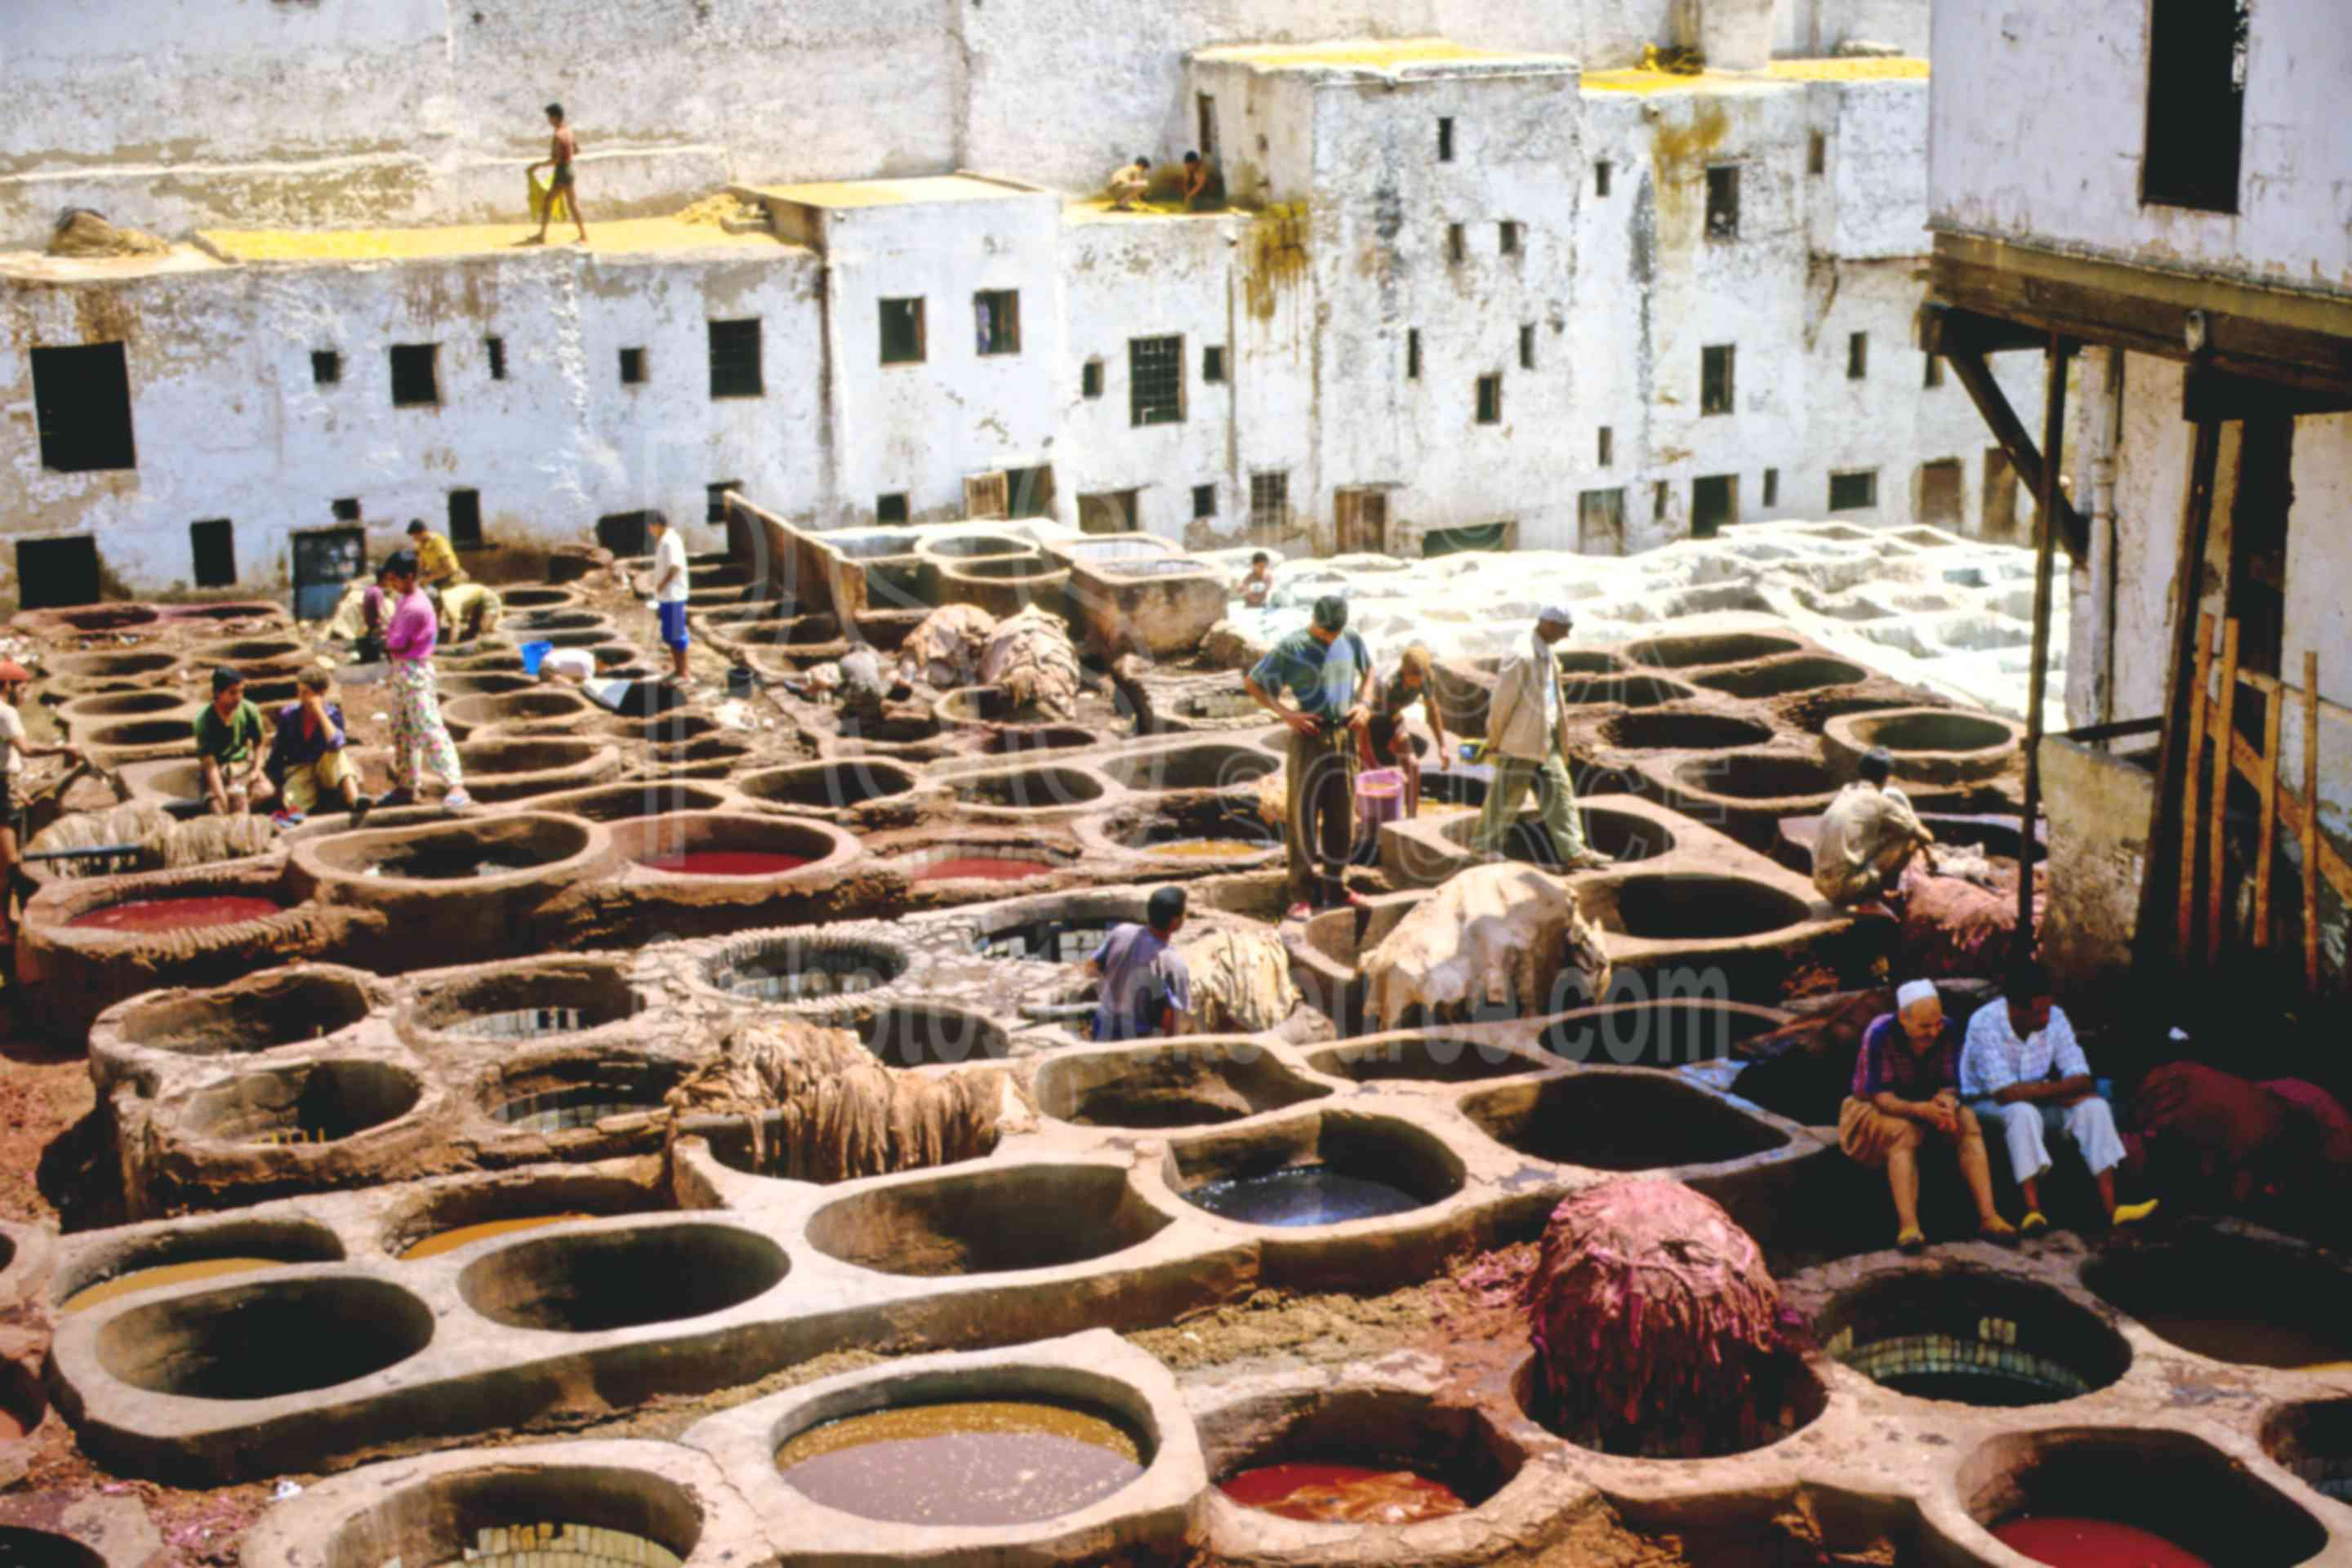 The Tannery,fezs,skins,tannery,work,worker,fezs